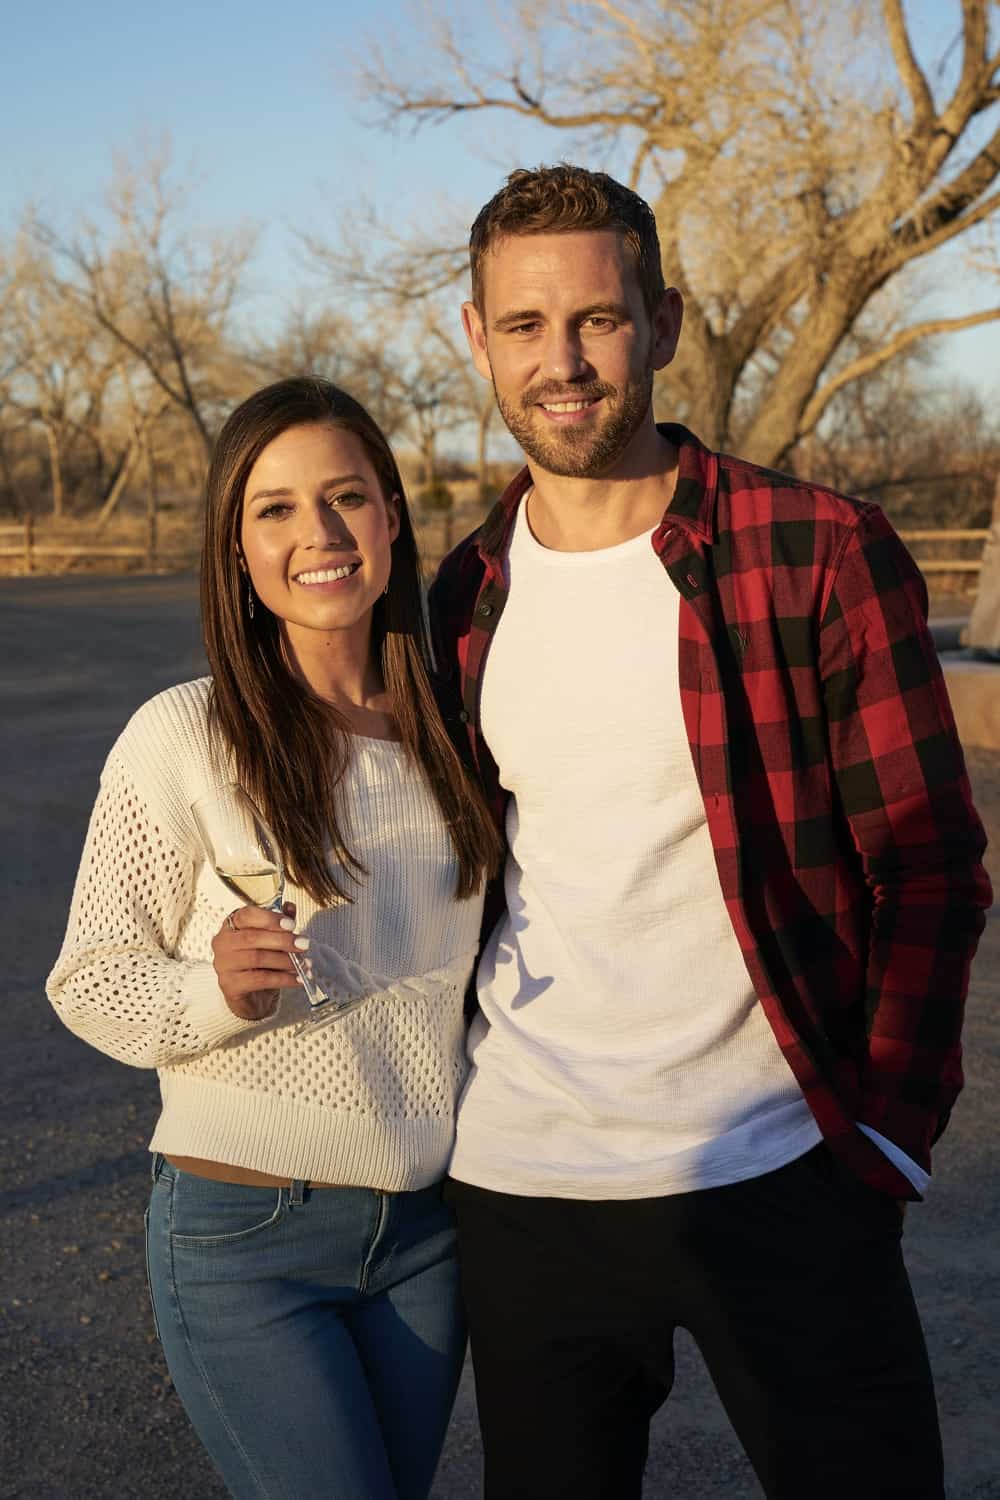 """THE BACHELORETTE SEASON 17 Episode 3 - """"1703"""" – Picking up during a heated cocktail party, Katie reminds the men that anyone not here for the right reasons can see themselves out. On the group date, former Bachelor Nick Viall helps the men share some of their personal stories. Moved by their honesty, Katie courageously opens up about her own story in a heart-wrenching moment. Later, Katie literally flips head over heels for her one-on-one date with Michael A., who opens up with a deeply heartfelt story of how he decided to follow his heart to New Mexico, and drama begins to boil over in the house. Is someone still here for the wrong reasons? An all-new """"The Bachelorette"""" airs MONDAY, JUNE 21 (8:00-10:00 p.m. EDT), on ABC. (ABC/Craig Sjodin) NICK VIALL, KATIE THURSTON"""